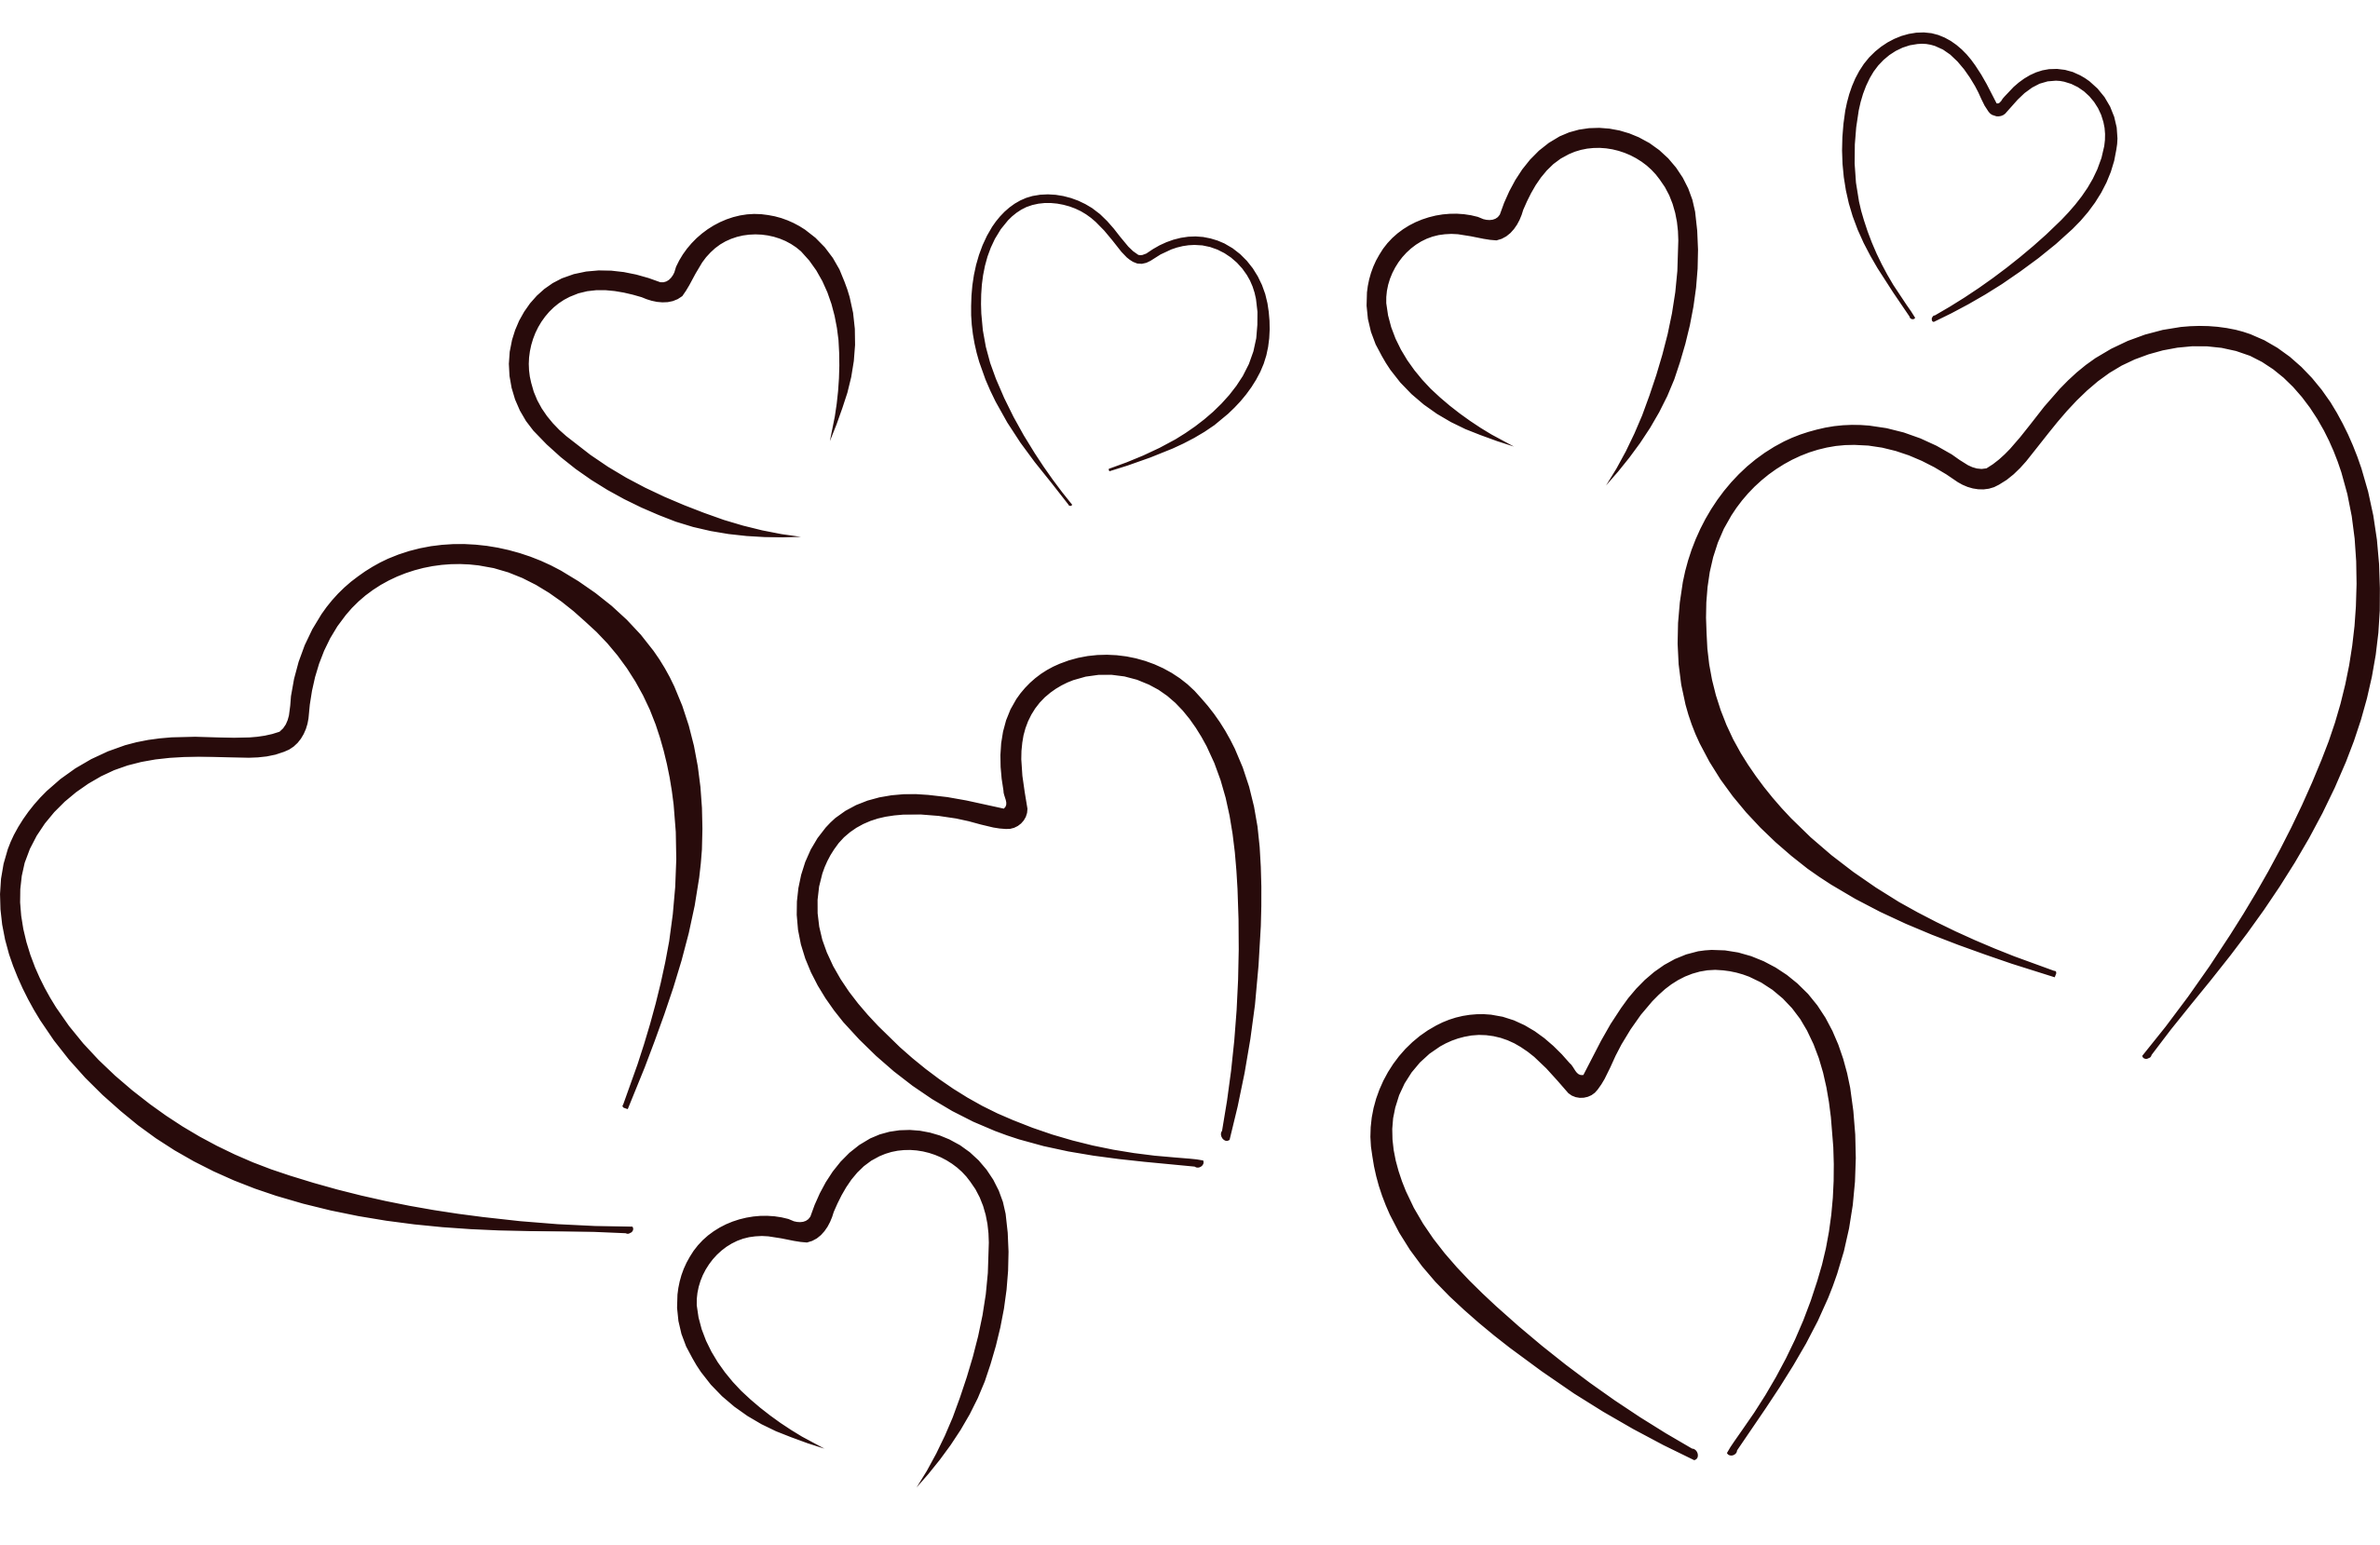 Wedding hearts clipart black and white jpg Wedding Hearts Clipart Black ., Heart White And Black Free Clipart ... jpg